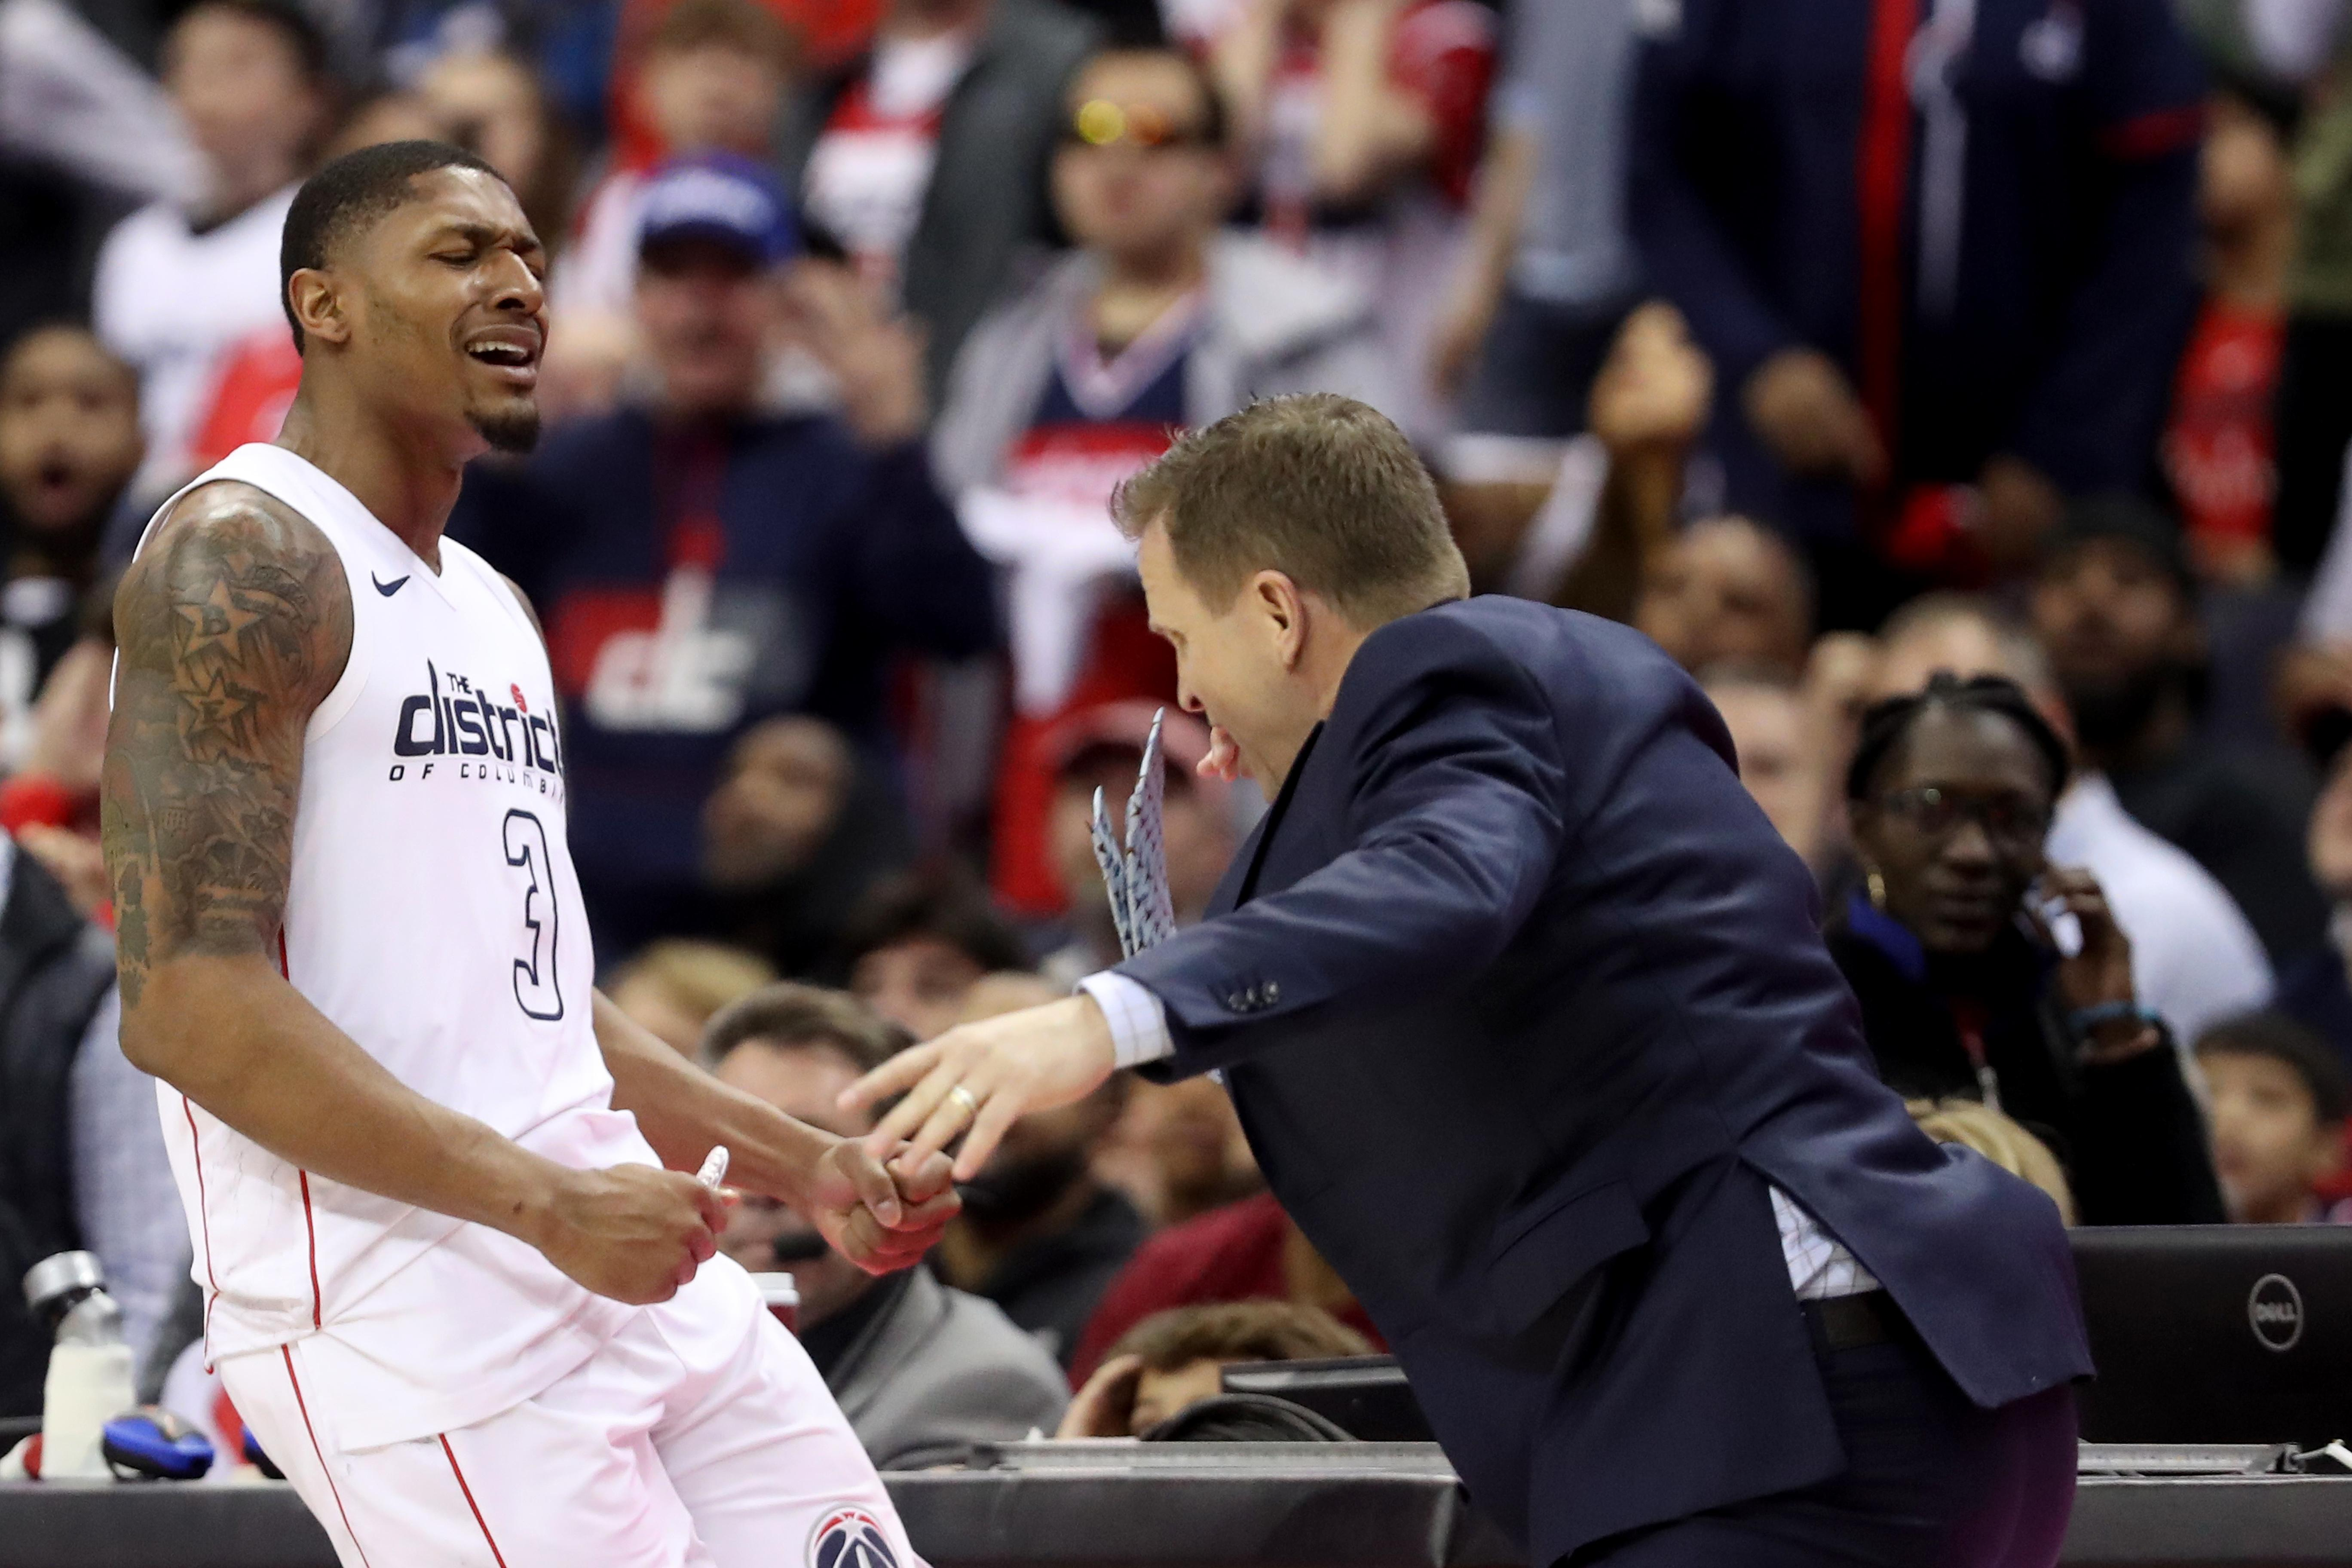 Bradley Beal lost it after fouling out of Game 4 on a controversial call